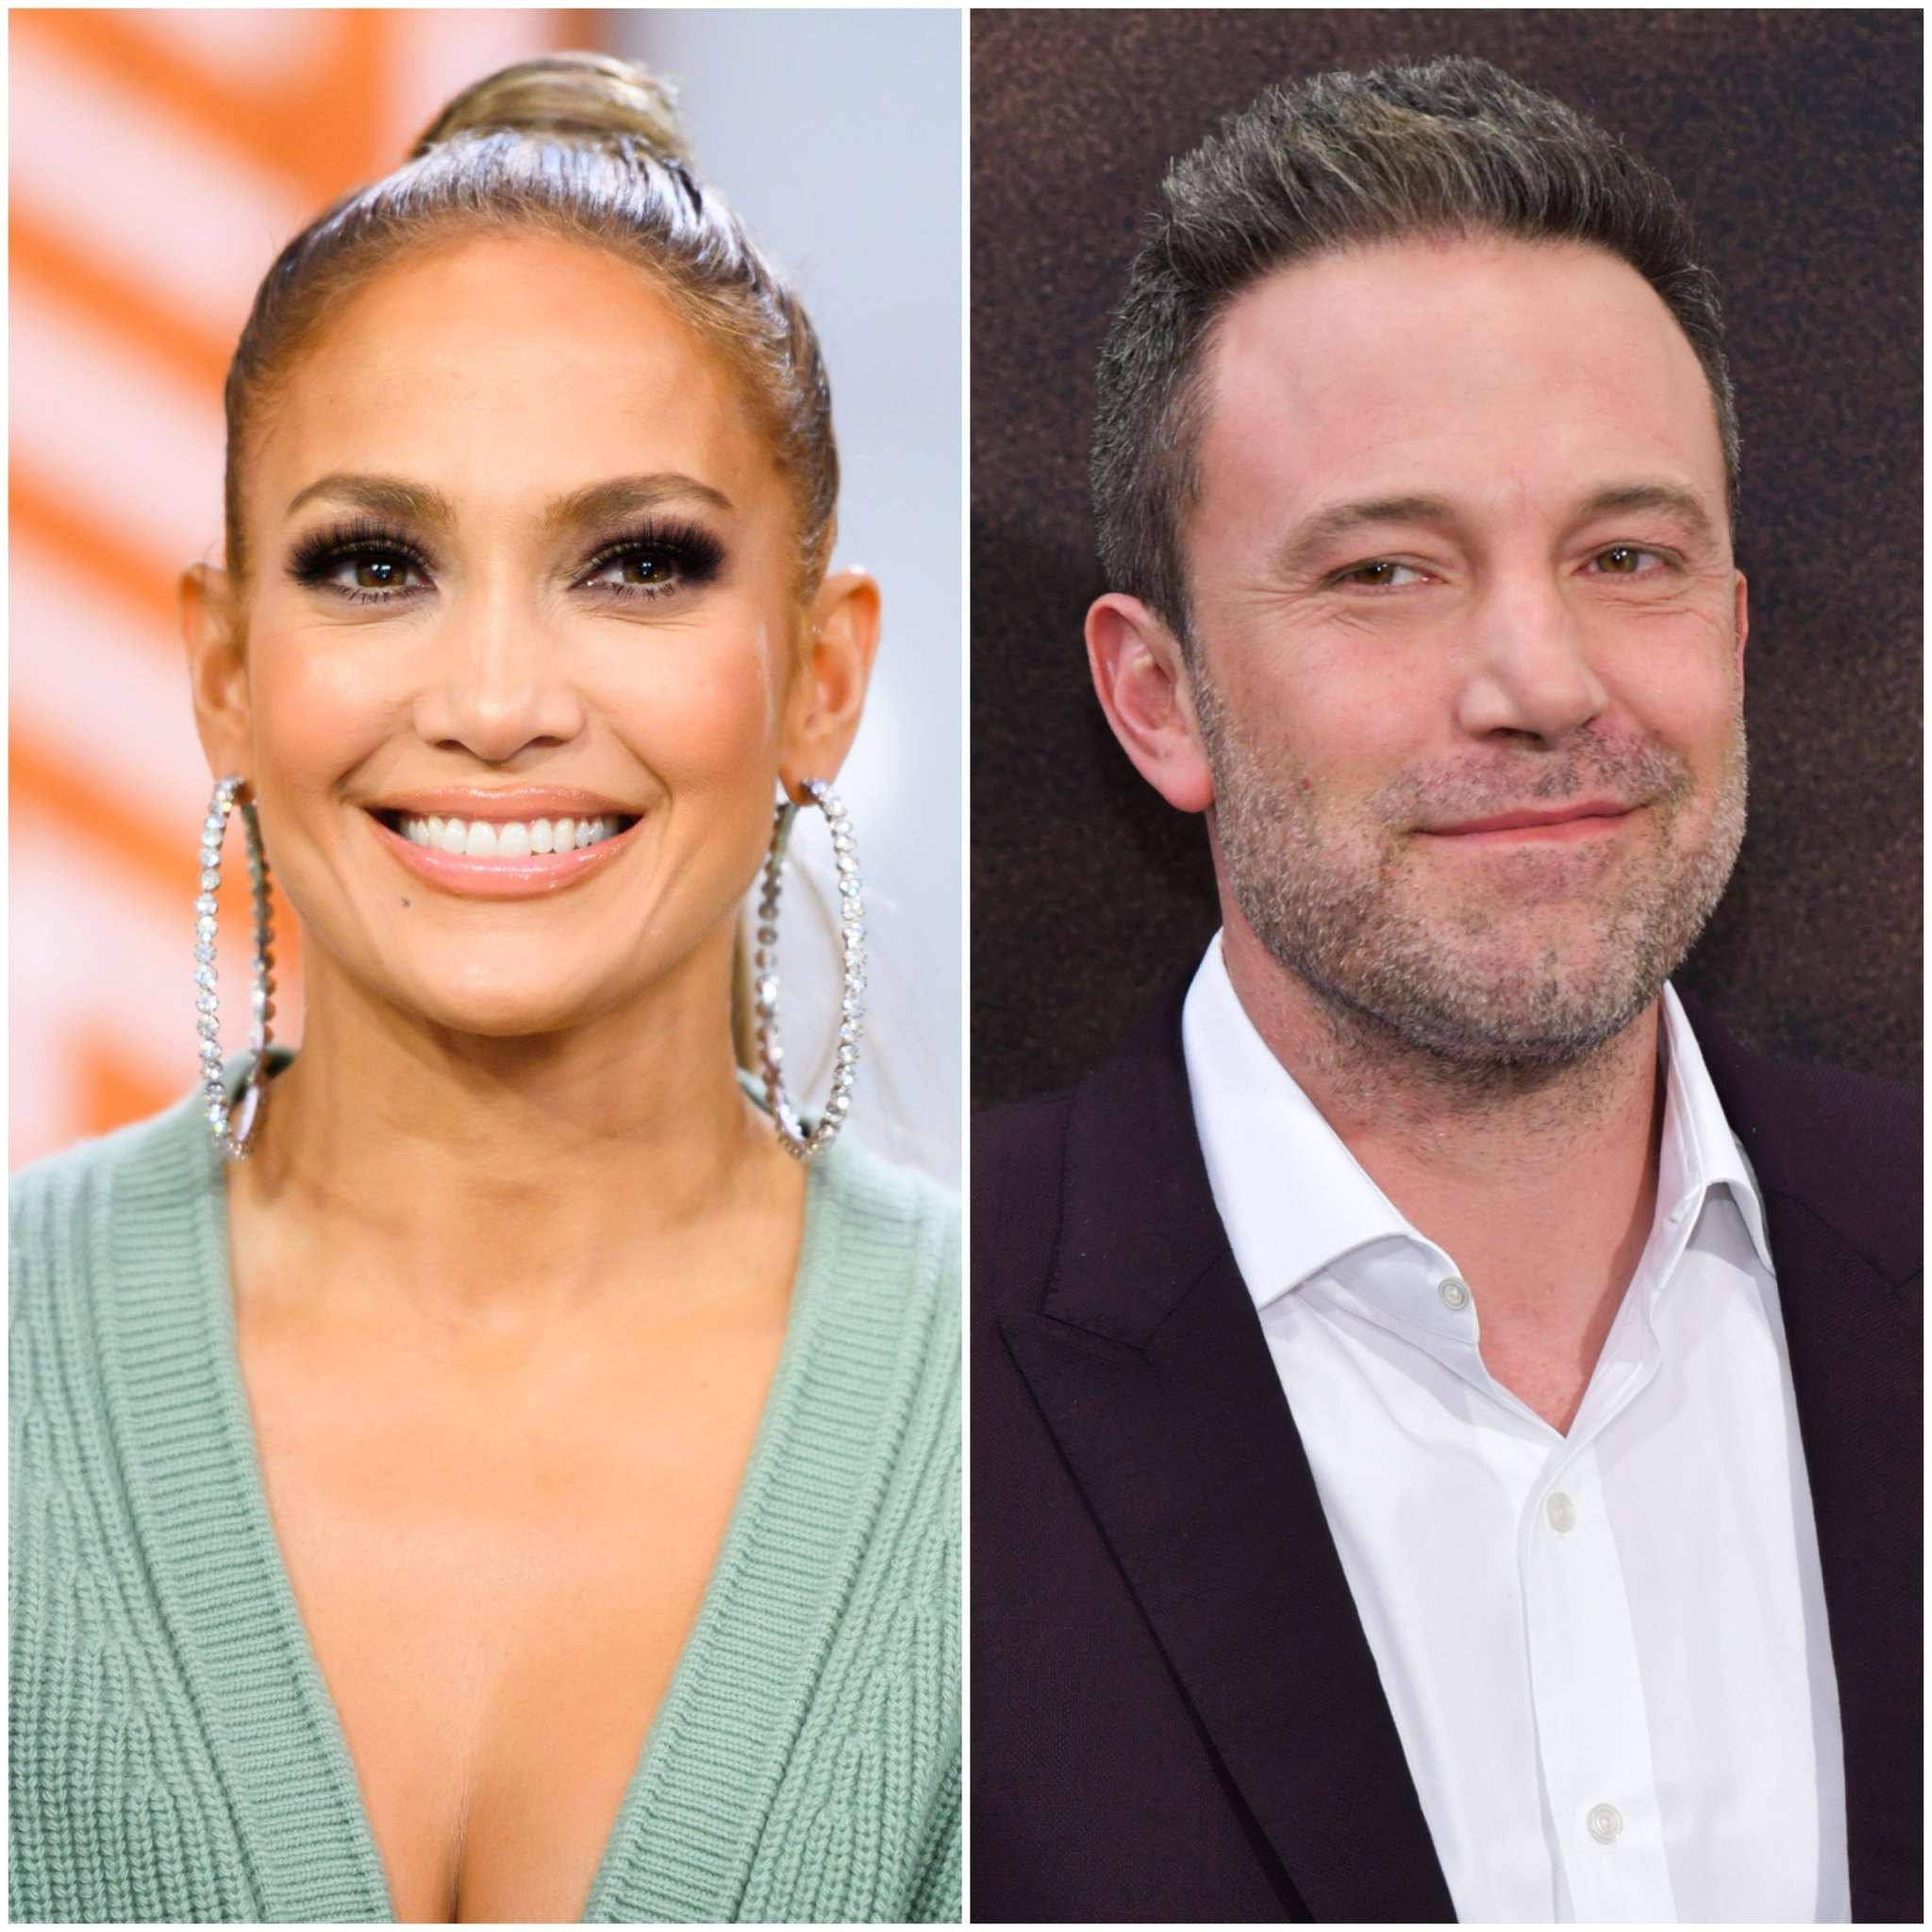 jennifer-lopez-and-ben-affleck-dont-feel-the-need-to-tie-the-knot-despite-being-fully-committed-to-each-other-heres-why